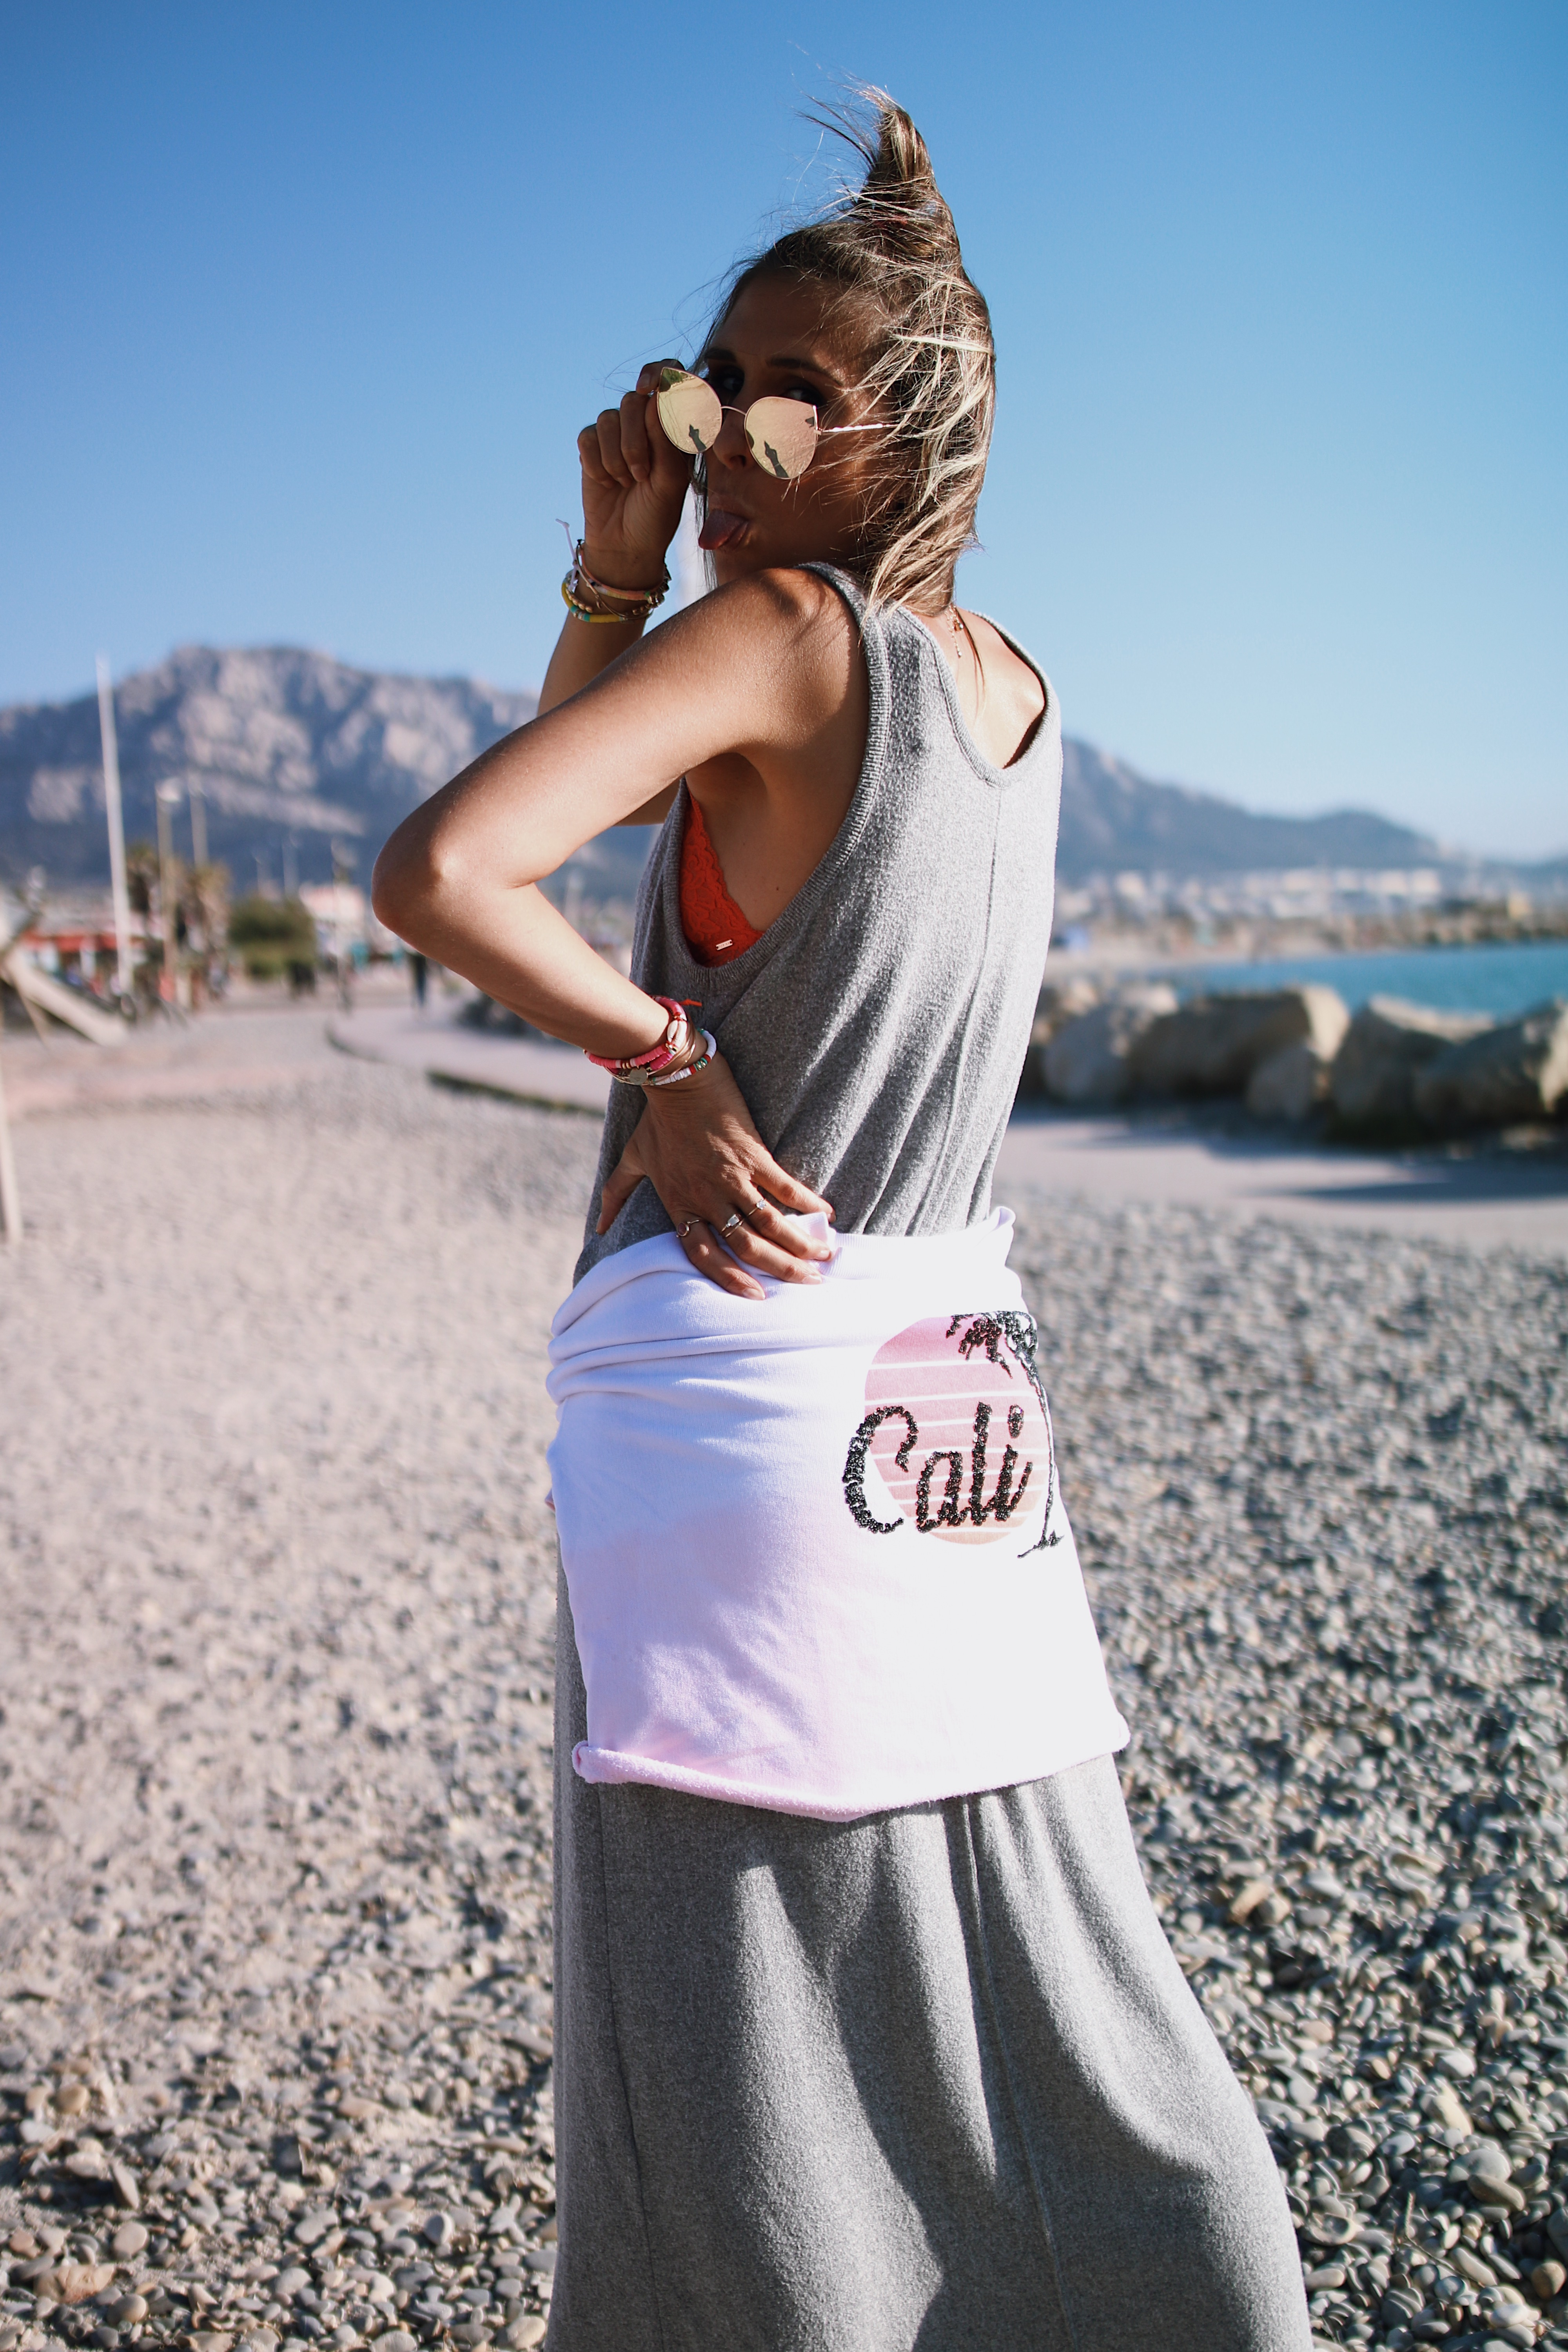 Chon & CHON - www.chonandchon.com - CALI - graphic sweatshirt and maxi dress - casual outfit, cali sweatshirt